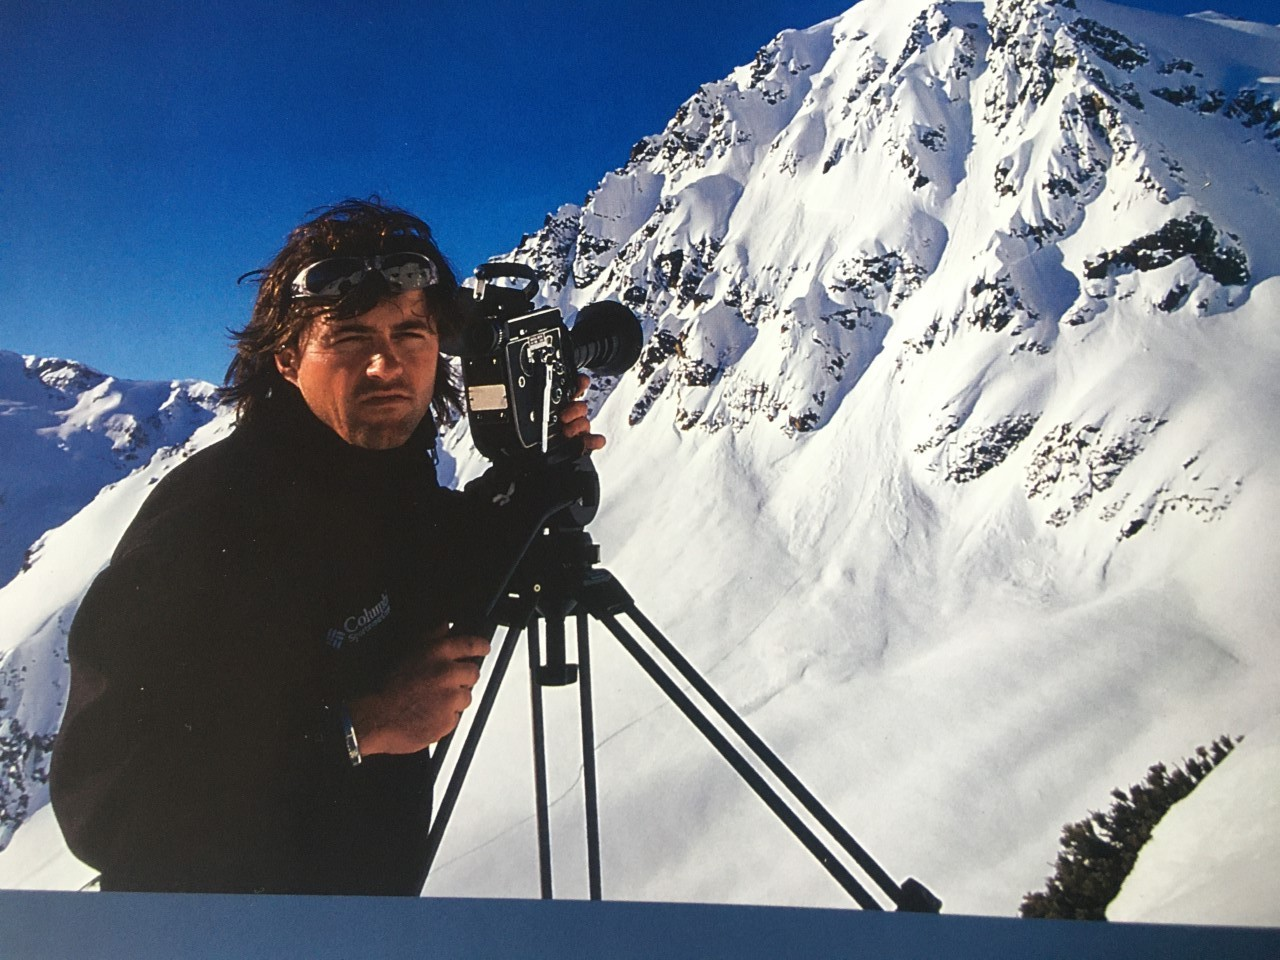 Exclusive-25th-Anniversary-Release-of-Locomotion-Ski-Film-Christian-Begin-old-shot